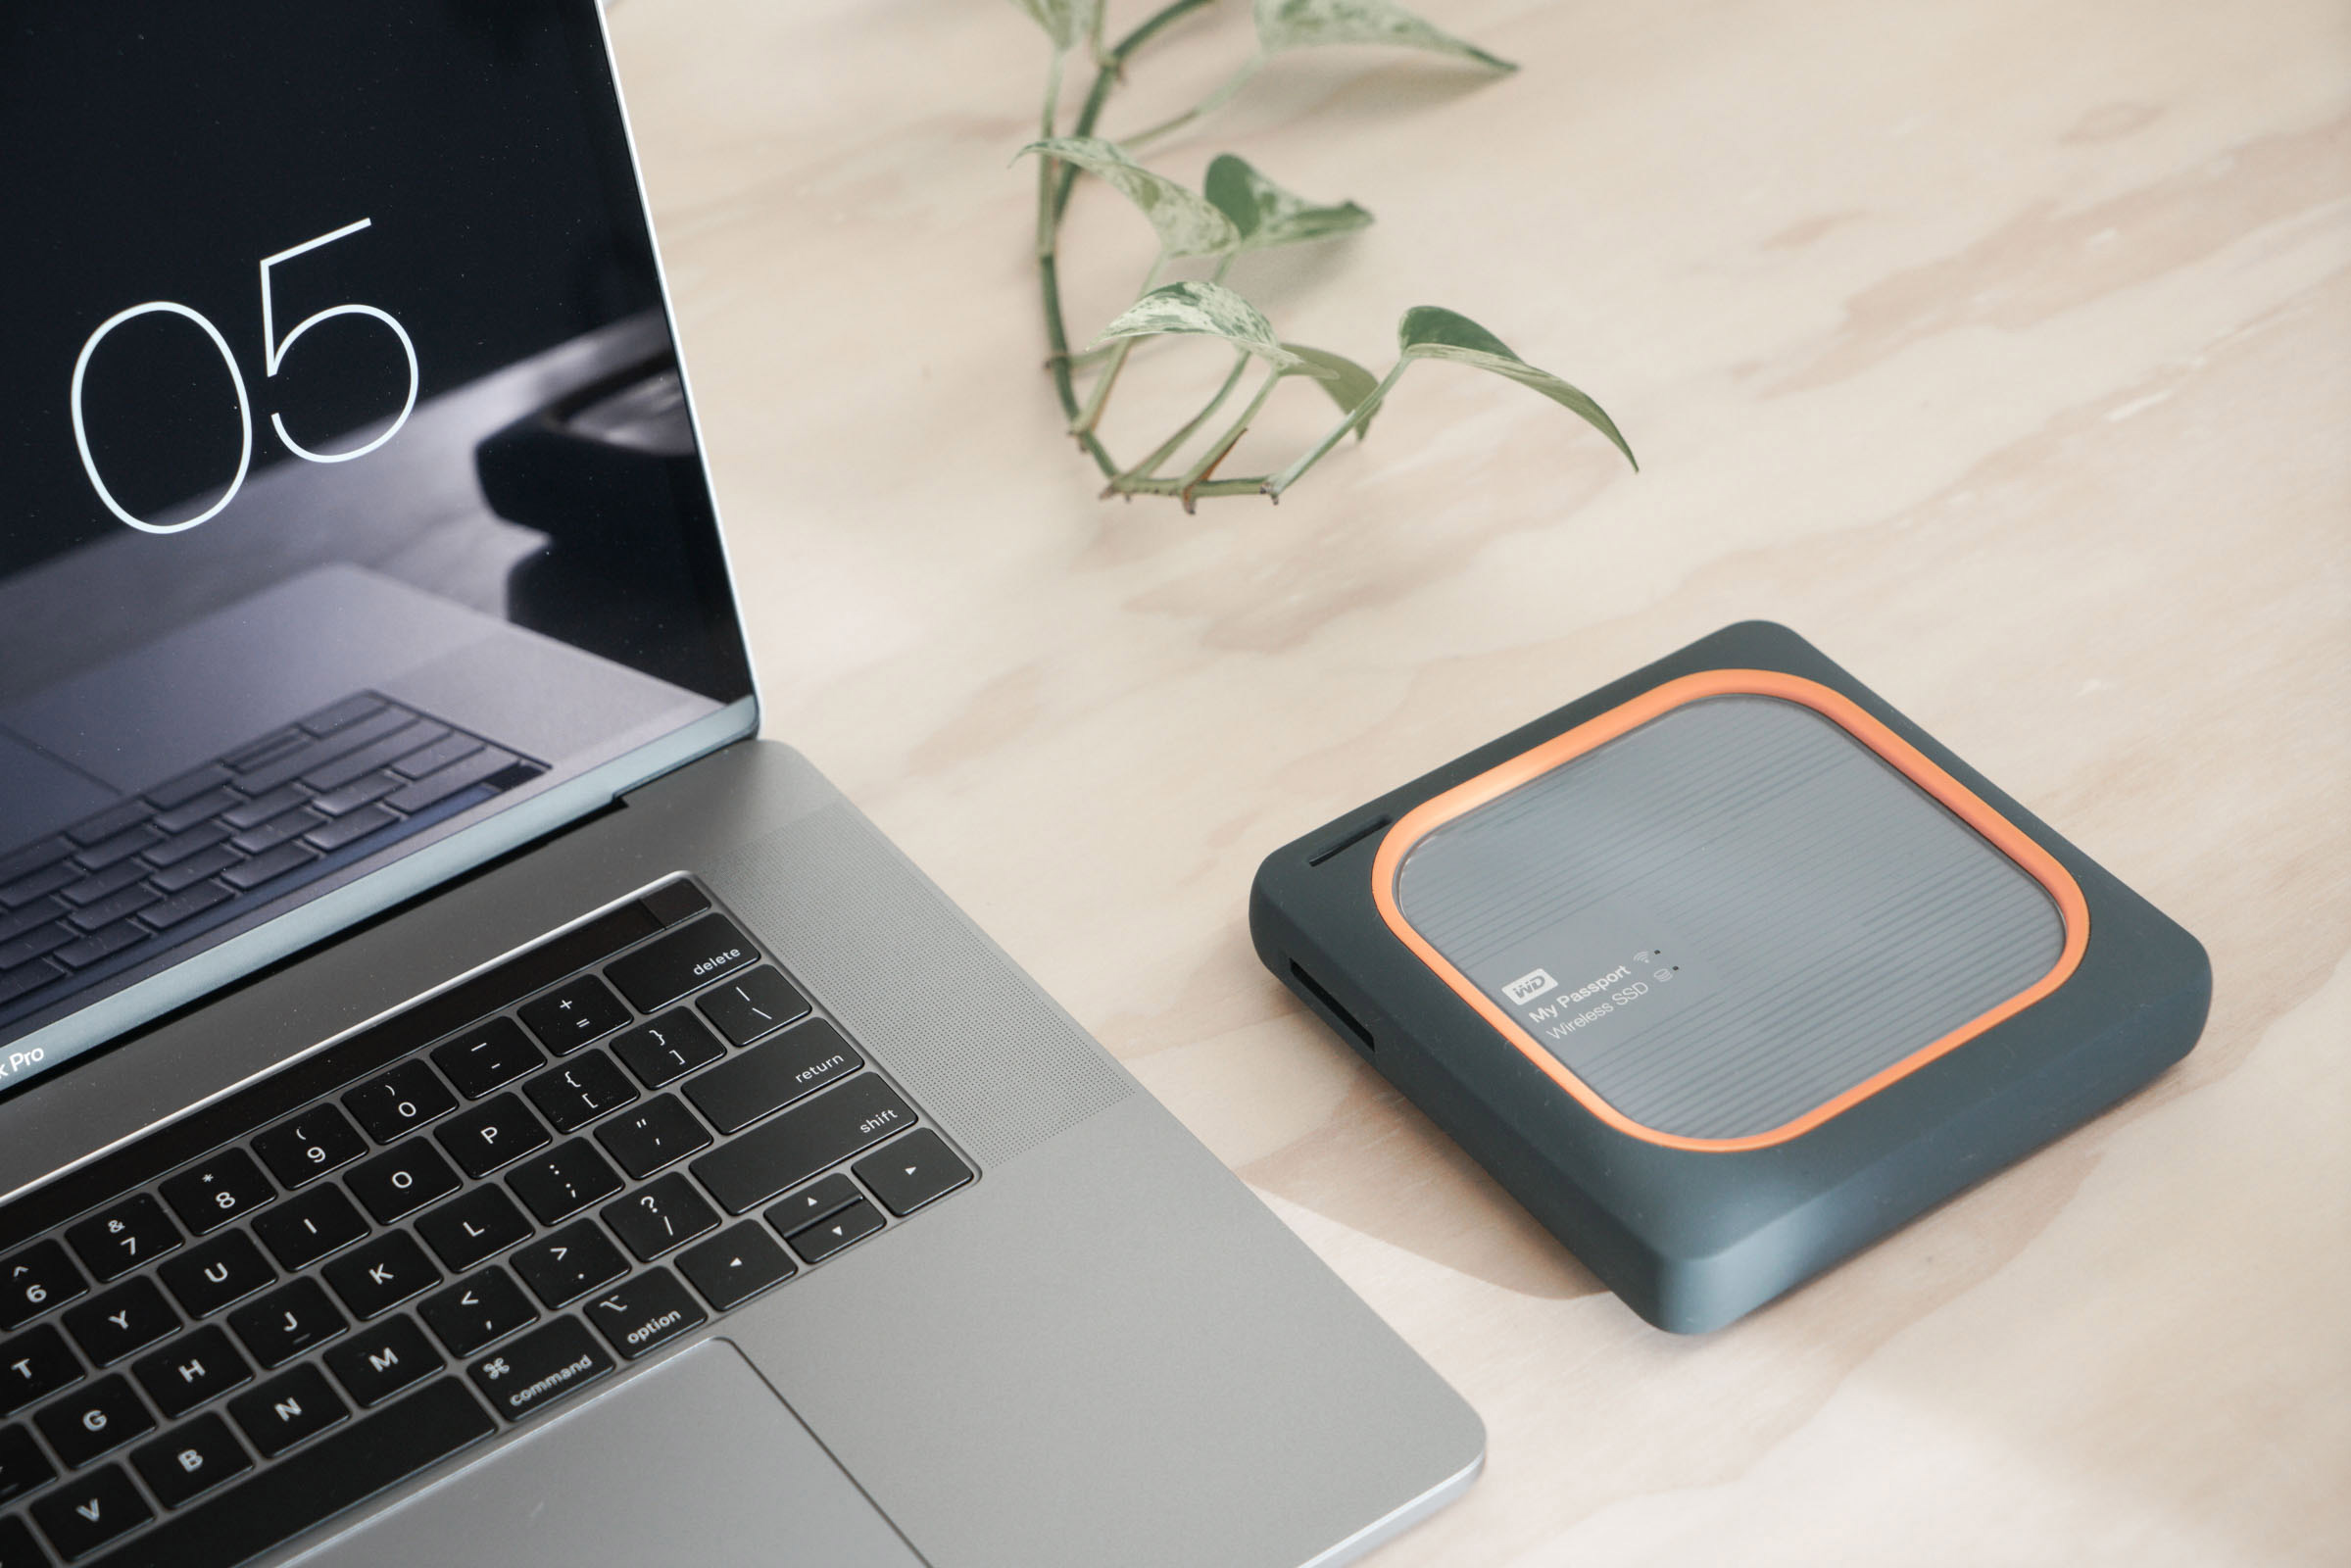 WD My Passport Wireless SSD - Macbook Pro